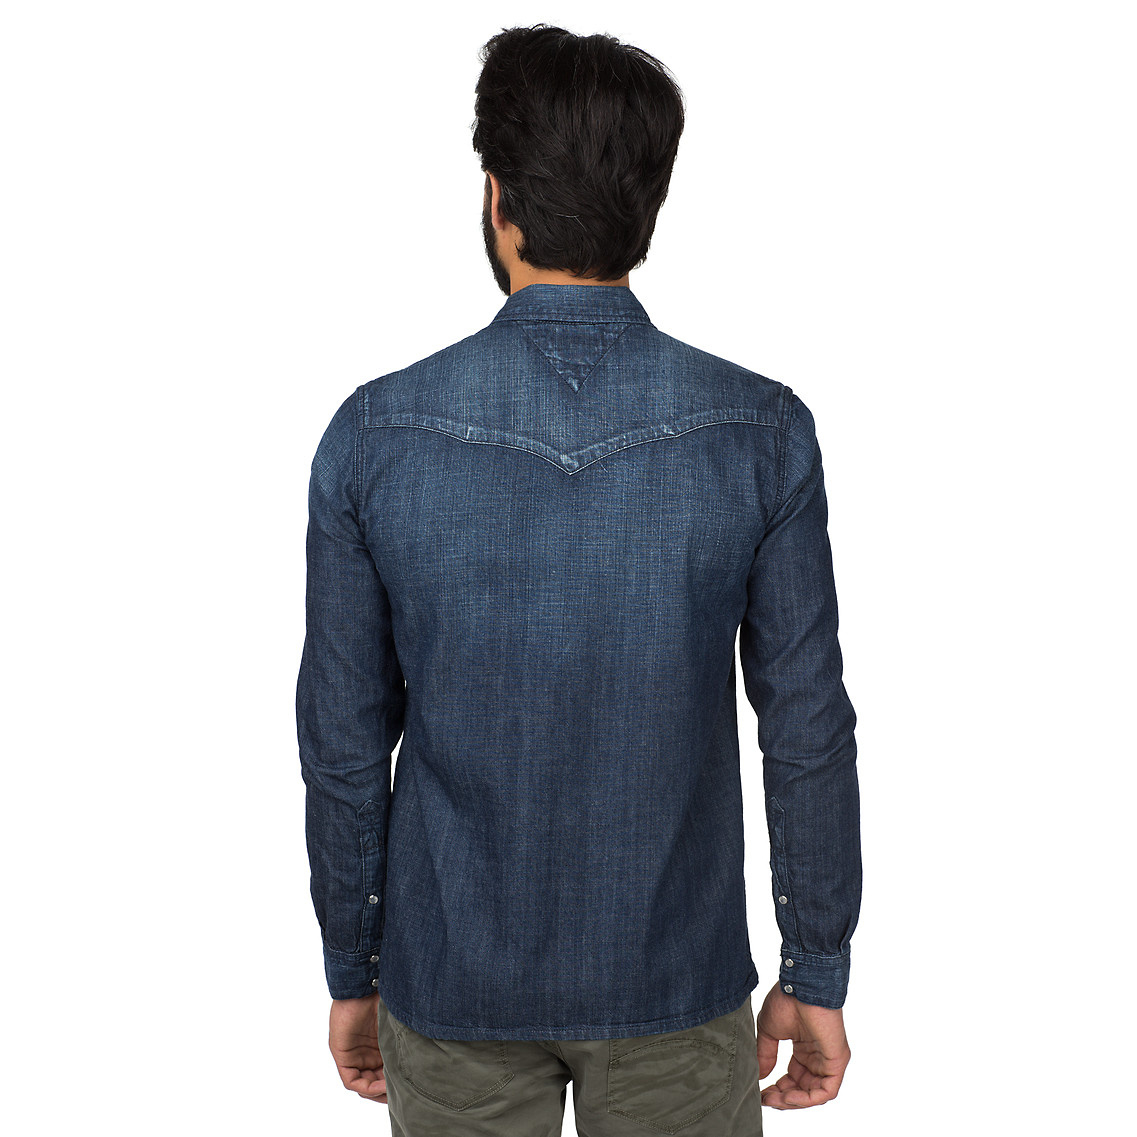 6d52359aa65 Tommy Hilfiger Gratton Denim Shirt in Blue for Men - Lyst